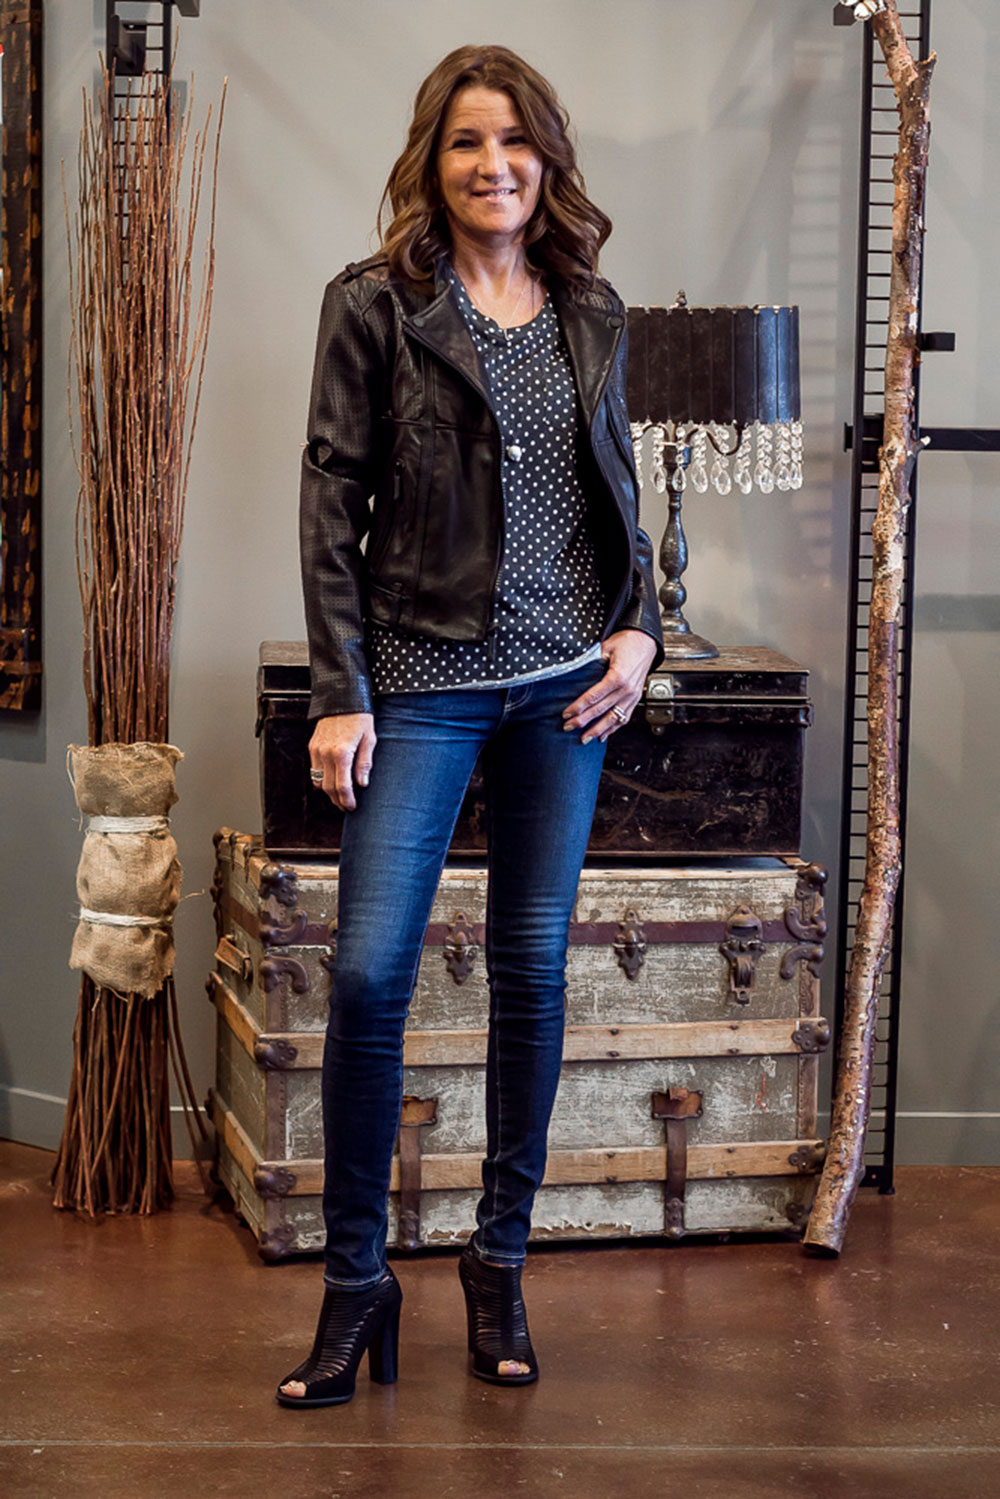 Bella-Maas-Edmonton-Womens-Fashion-Boutique-Dex-J-Brand-Matt-Nat-04.jpg